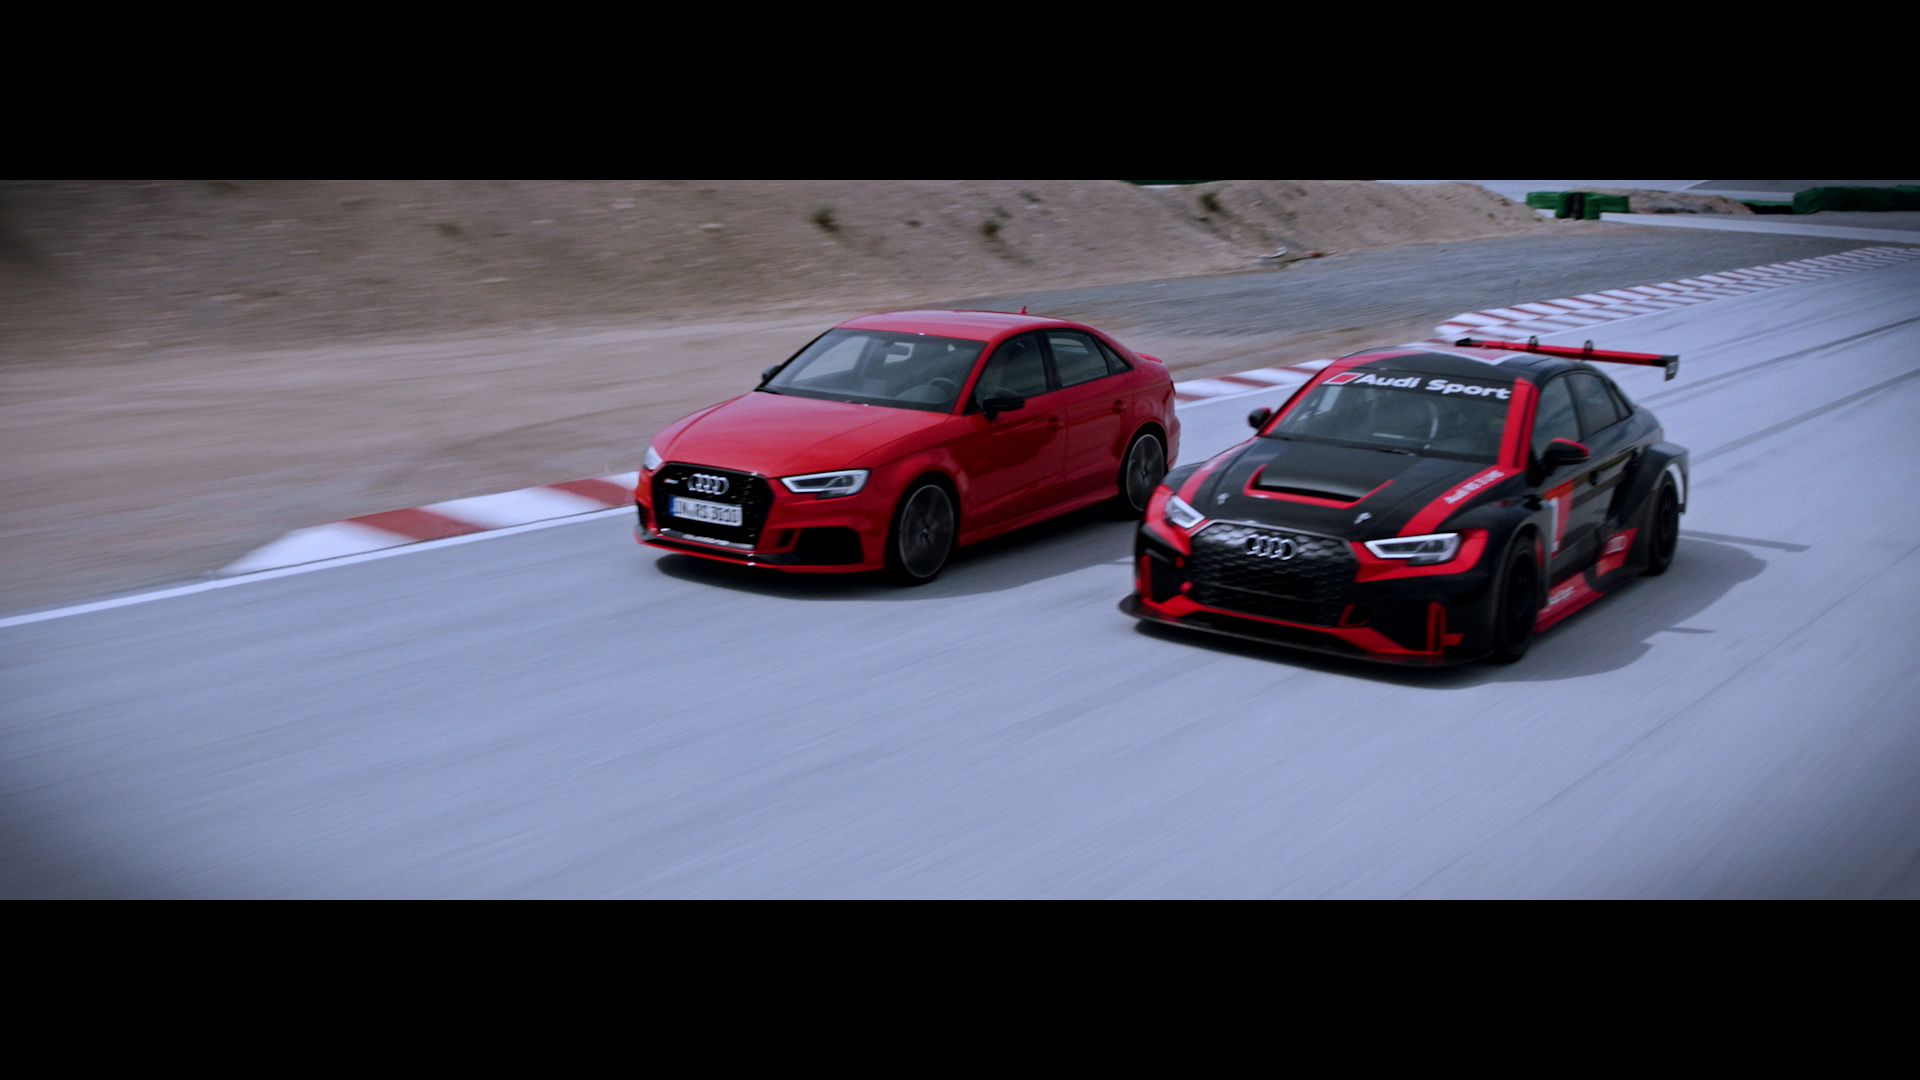 Born on the track, built for the road - Audi RS 3 and RS 3 LMS